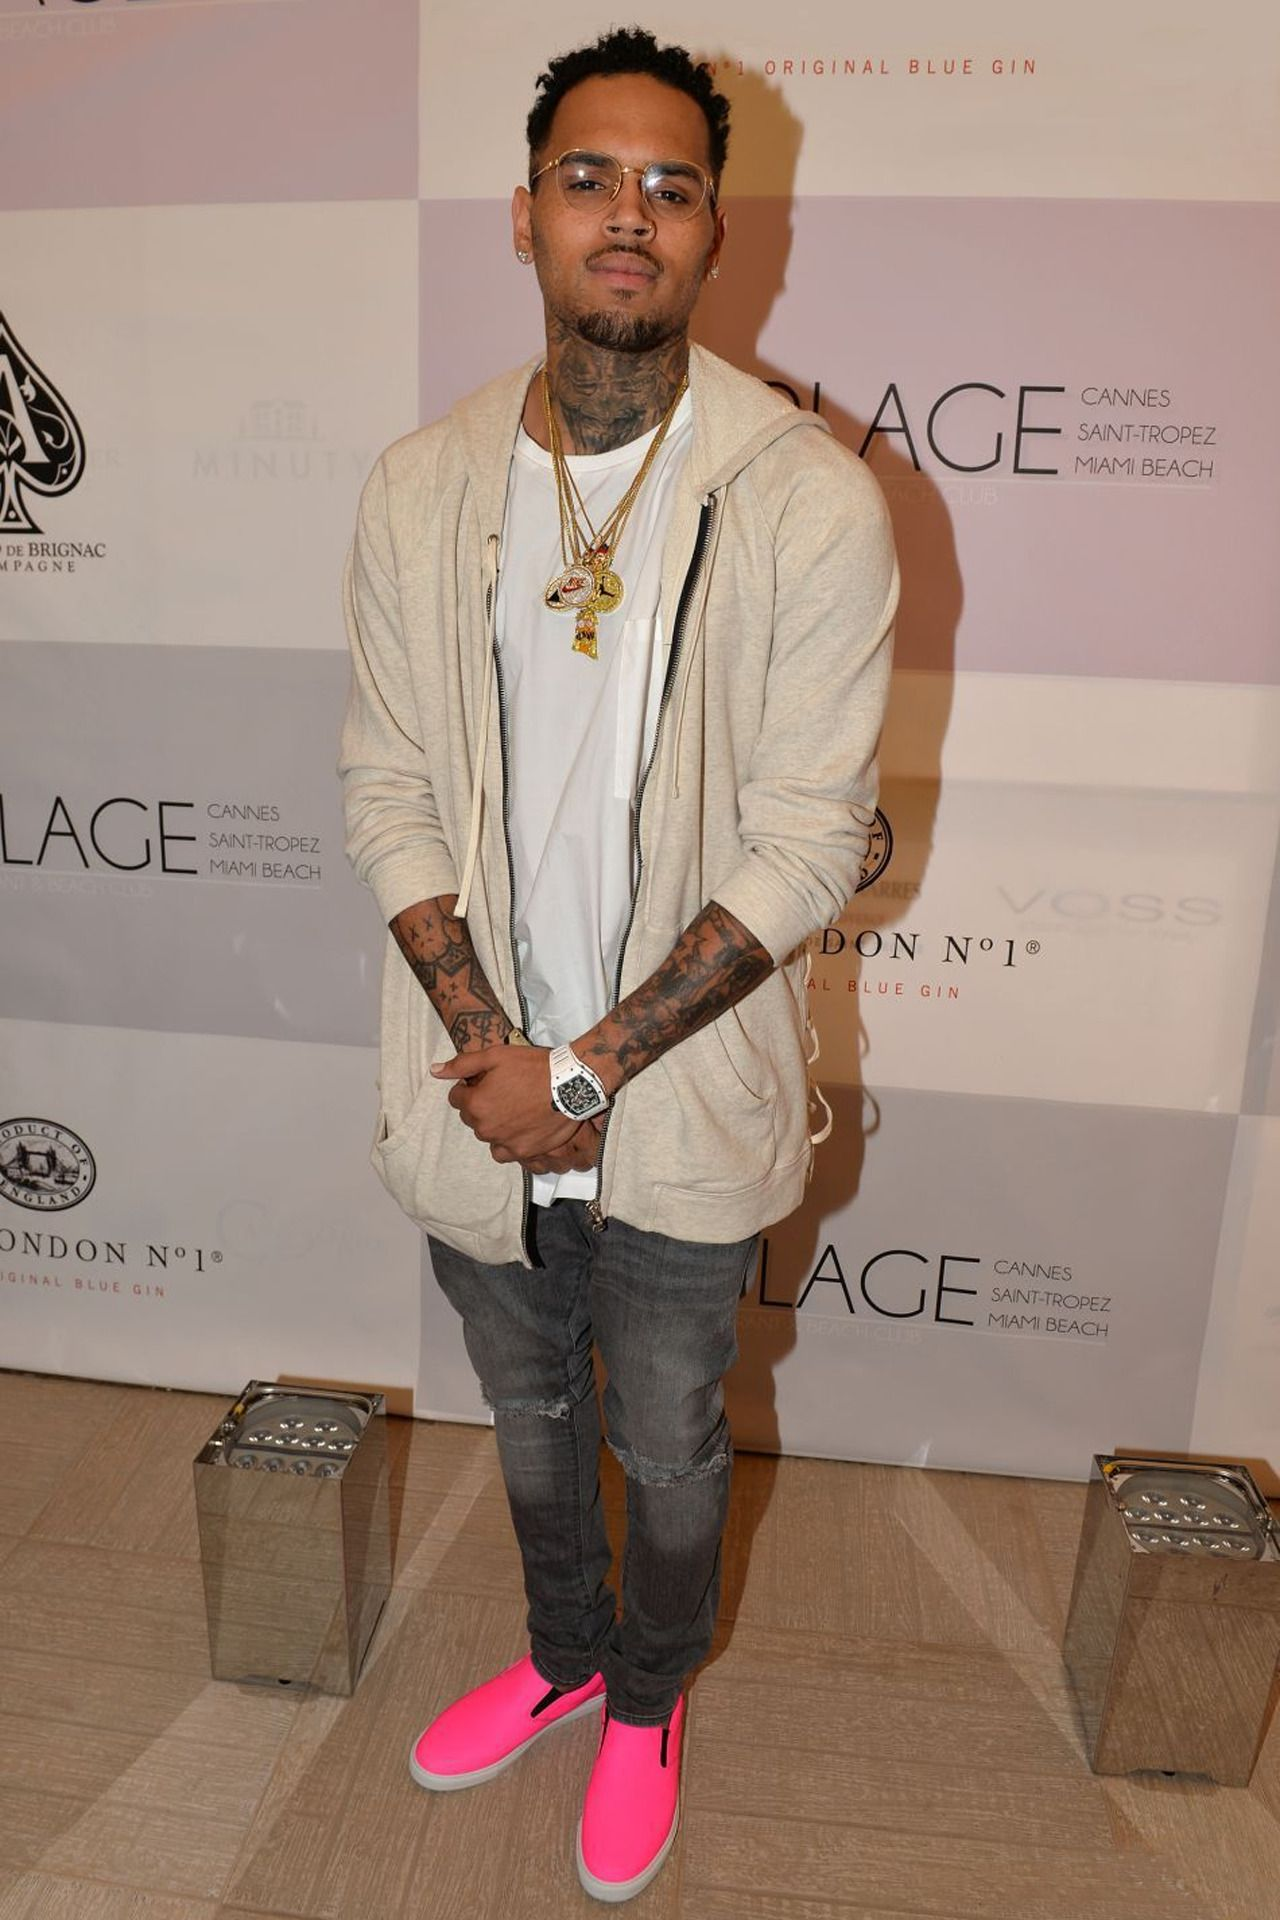 Chris Brown goes fashionably pinky shoes loud! Black